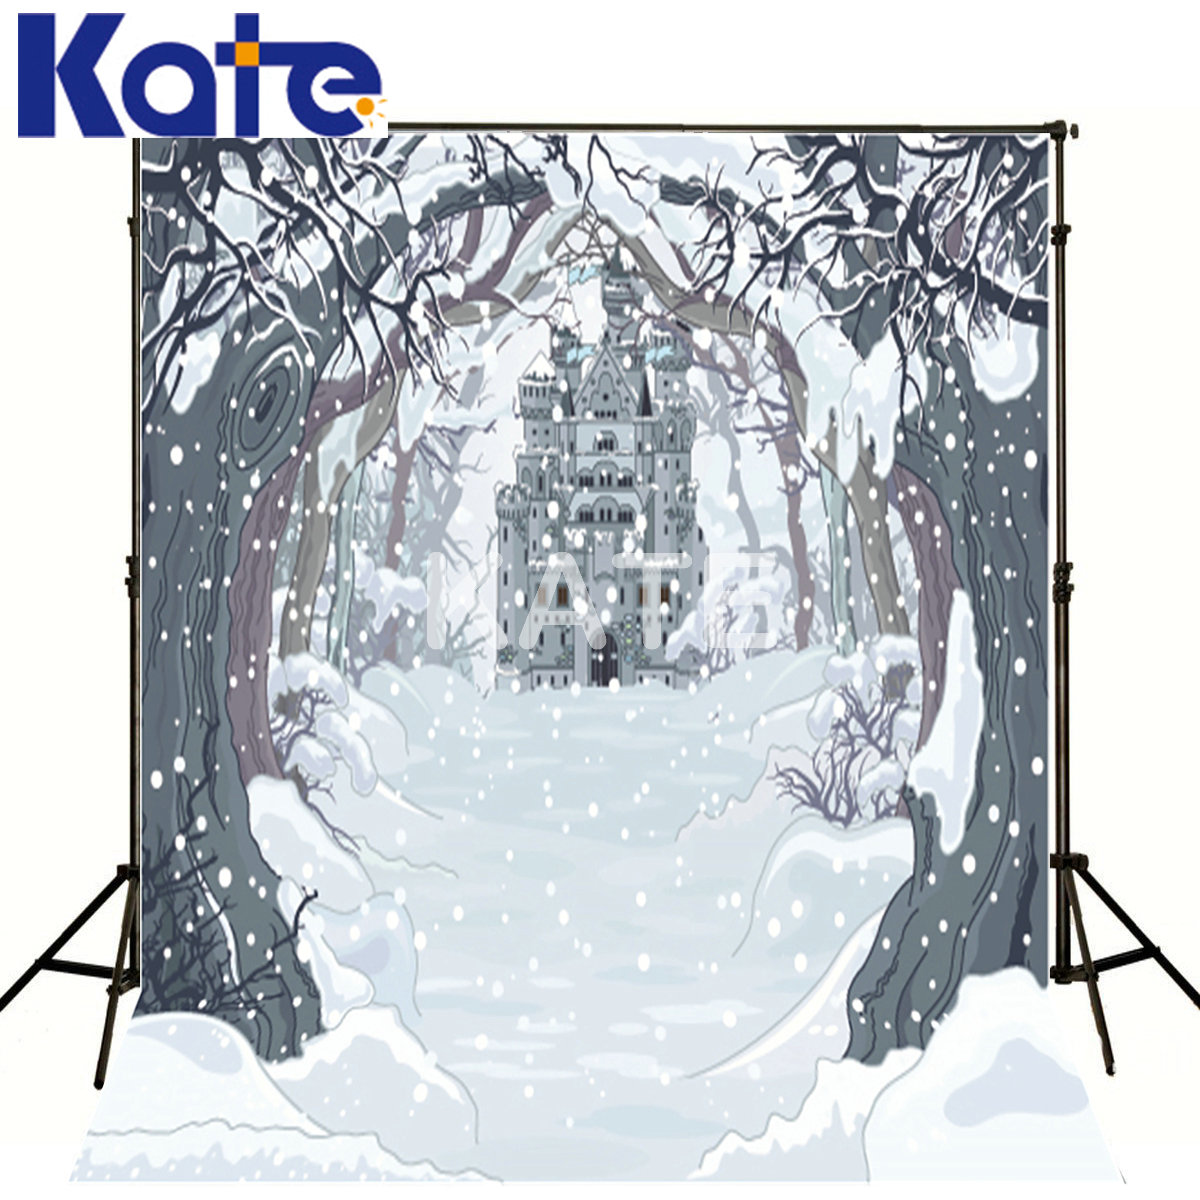 KATE Winter Backdrops Photography Castle Cartoon Forest Backgrounds Scenery Fairy Tale World Backdrops For Children Photo Studio kate photography backdrop winter snow tree castle scenery photography background lighting spot dream backdrops studio